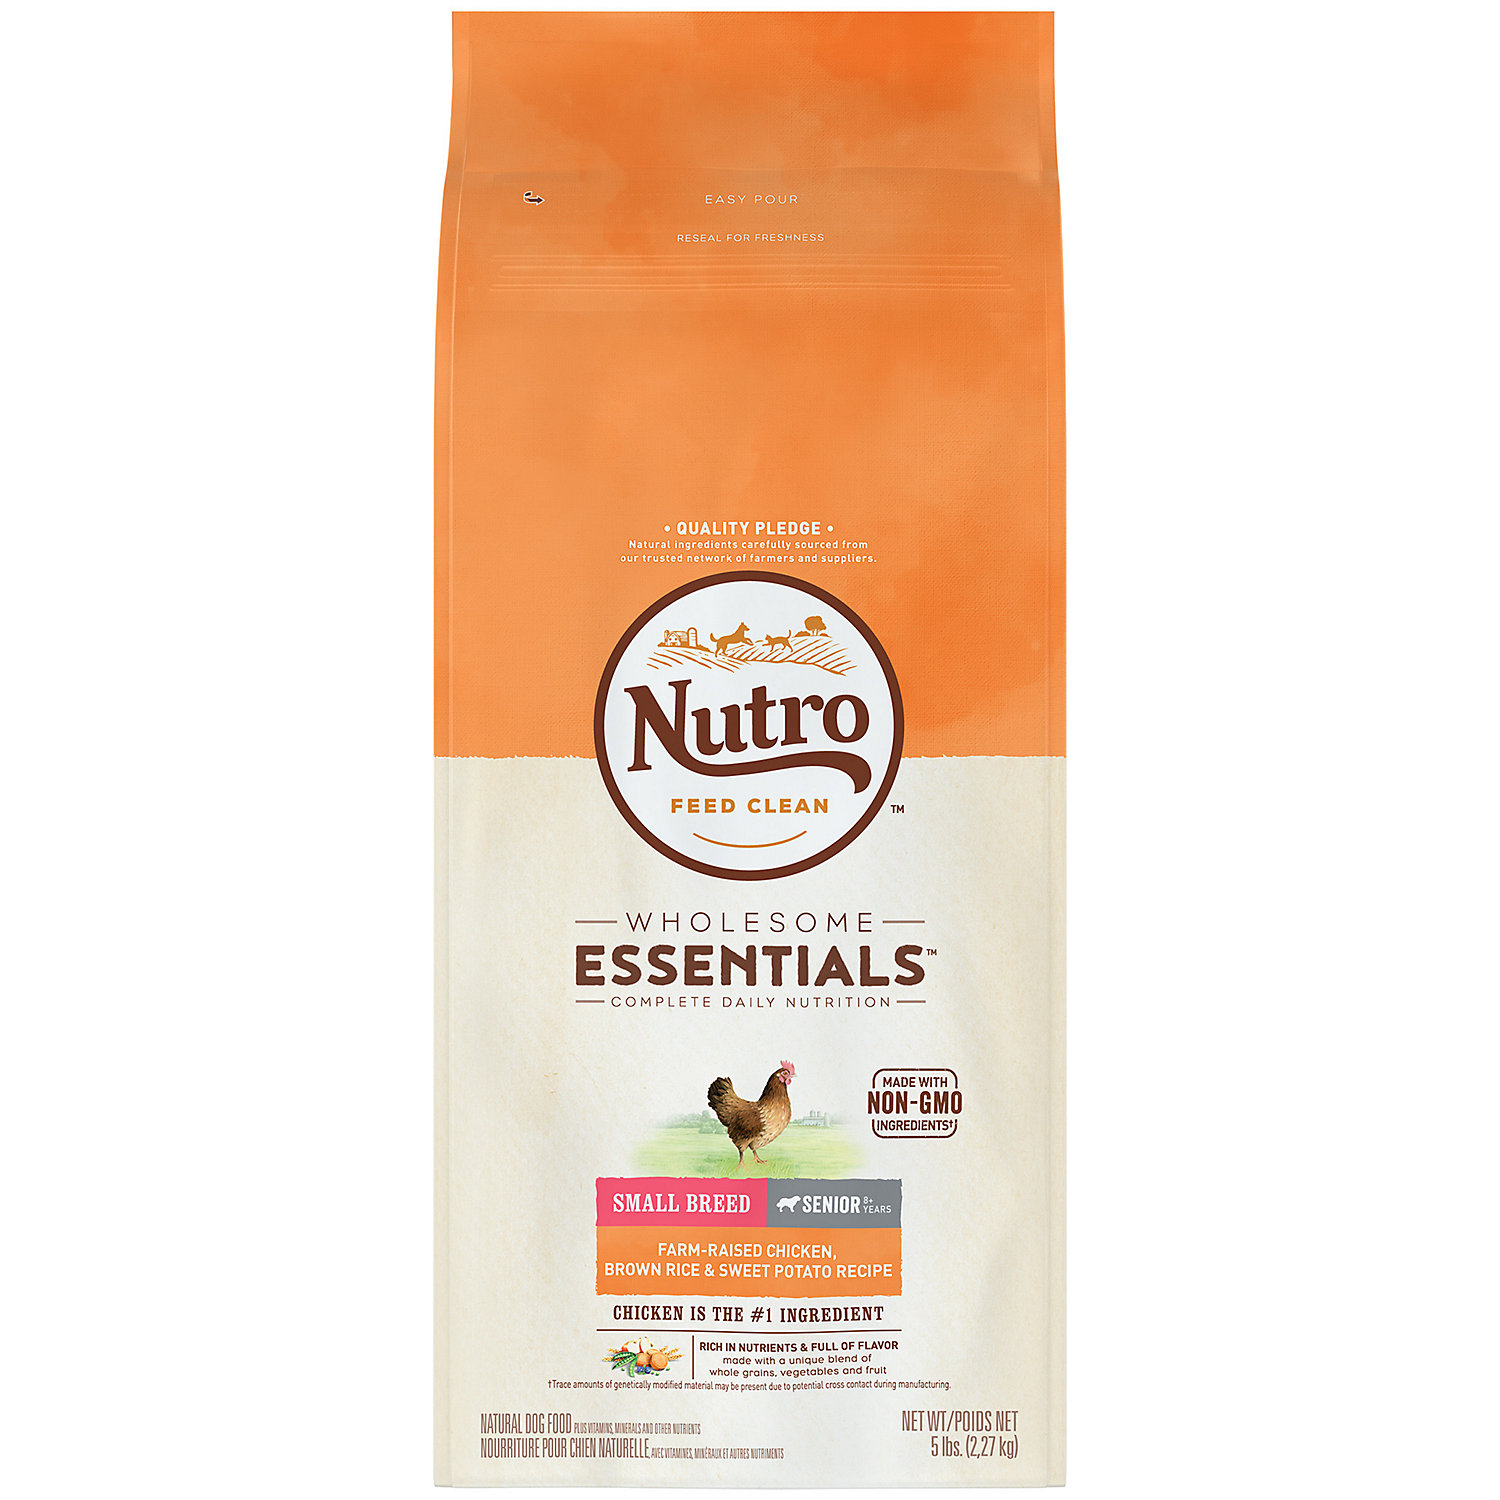 Nutro Wholesome Essentials Farm-Raised Chicken, Brown Rice & Sweet Potato Recipe Dry Small Breed Senior Dog Food